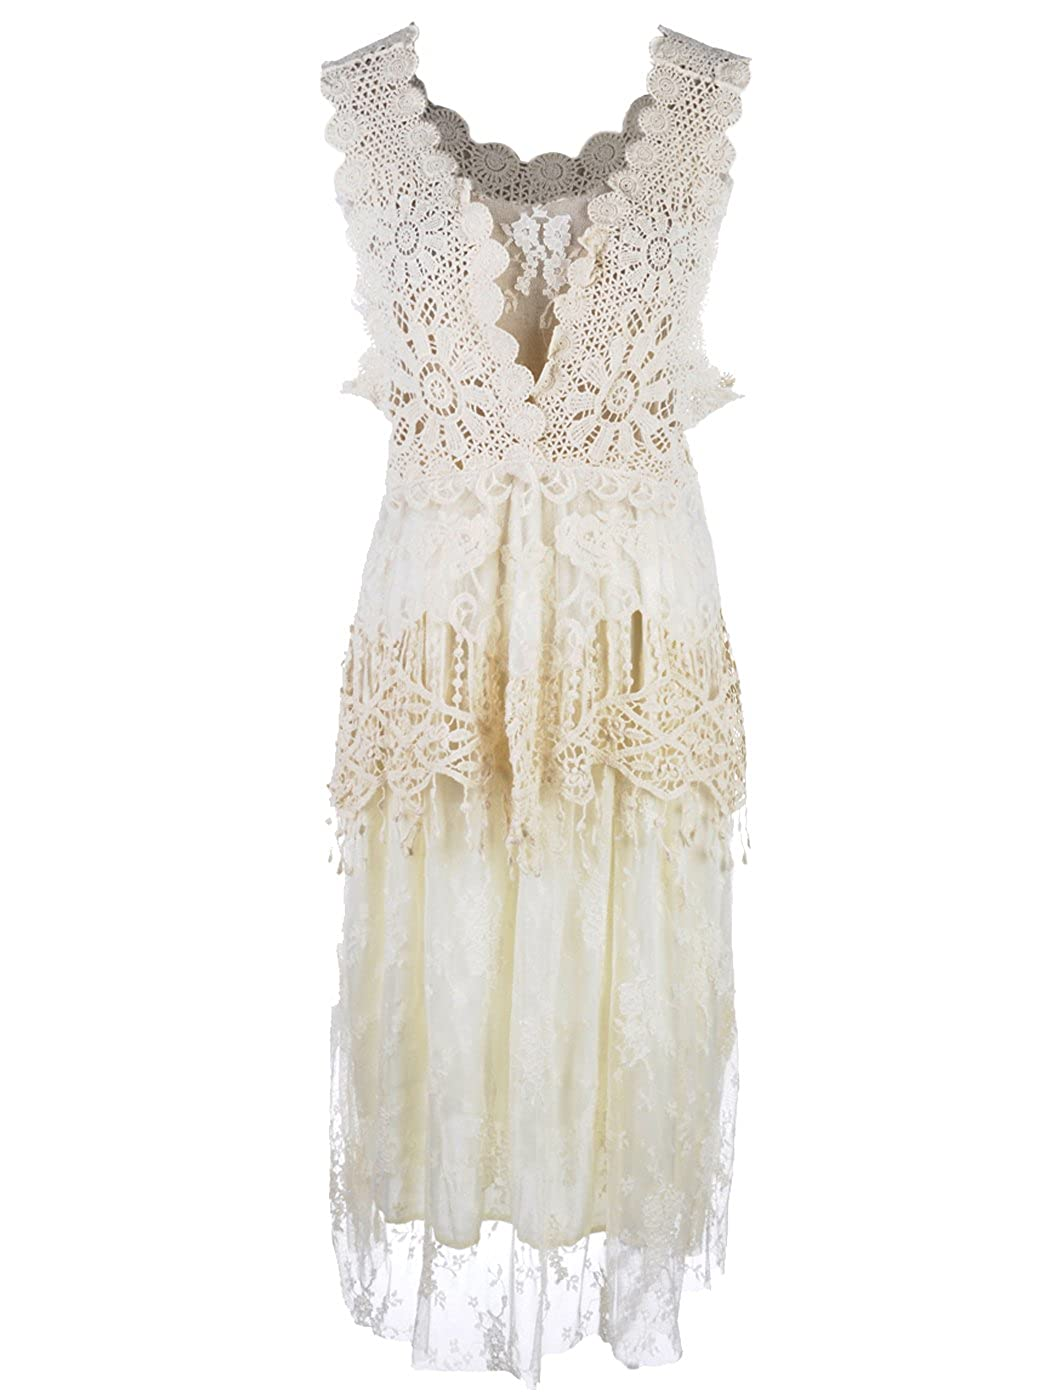 1920s Costumes: Flapper, Great Gatsby, Gangster Girl Anna-Kaci Womens Vintage Granny Influence Embroidery Detail Lace Ruffle Dress $47.90 AT vintagedancer.com